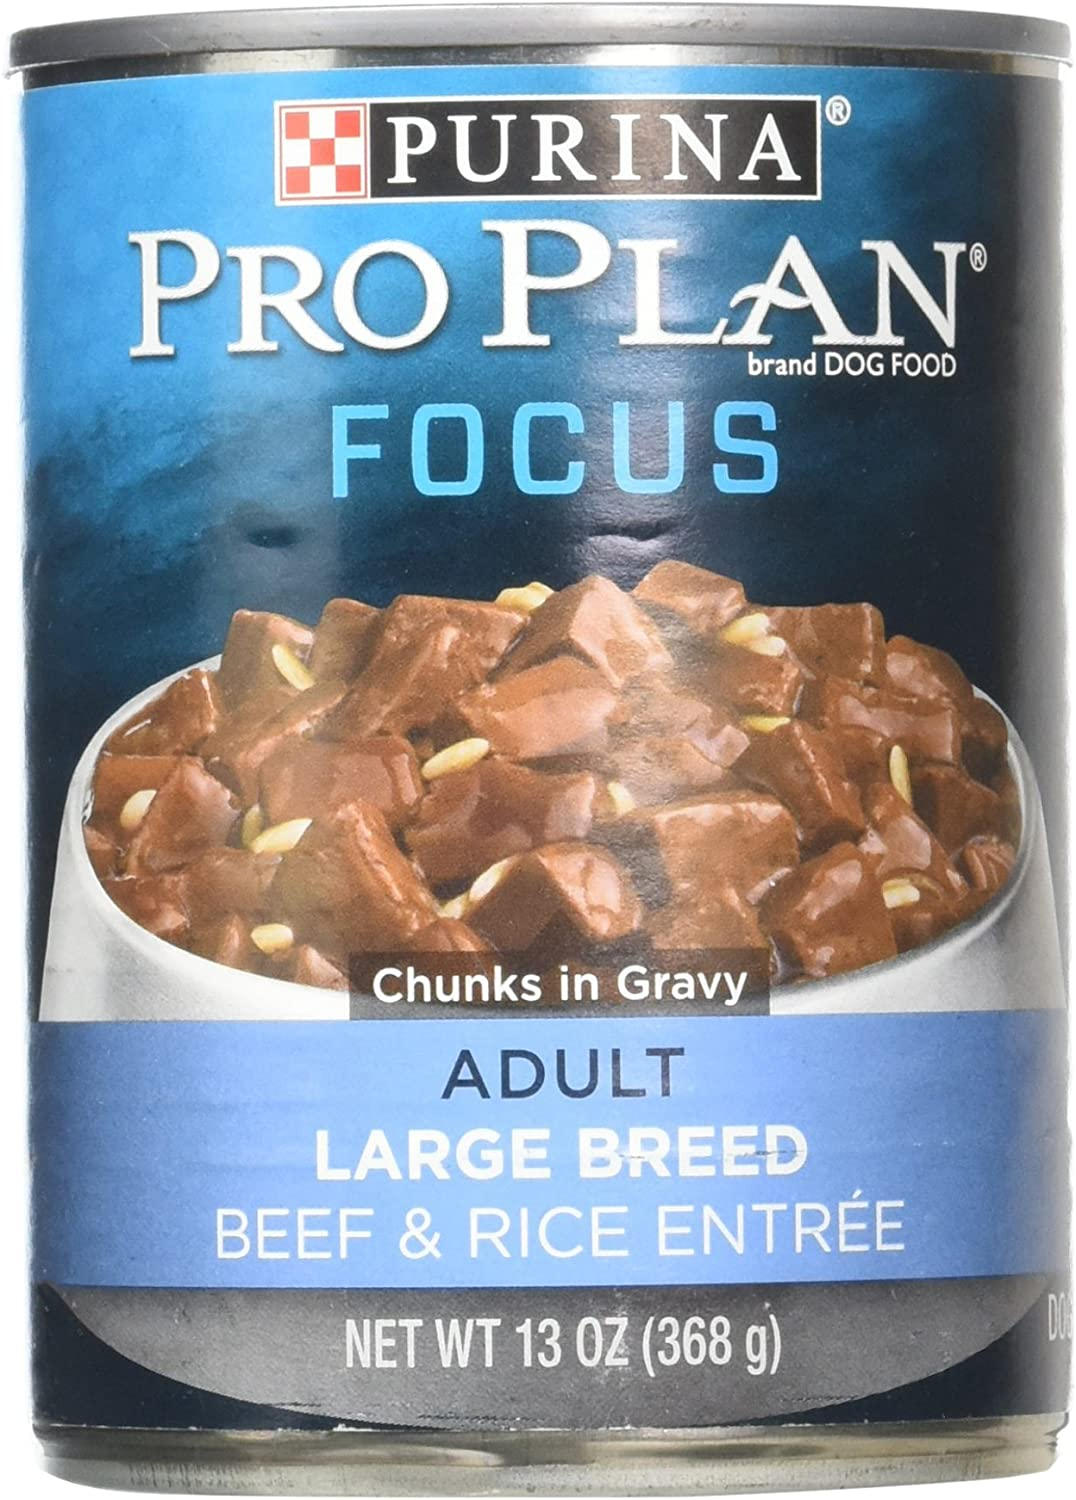 Purina Pro Plan Canned Adult Large Breed Beef and Rice Food, 13 oz.